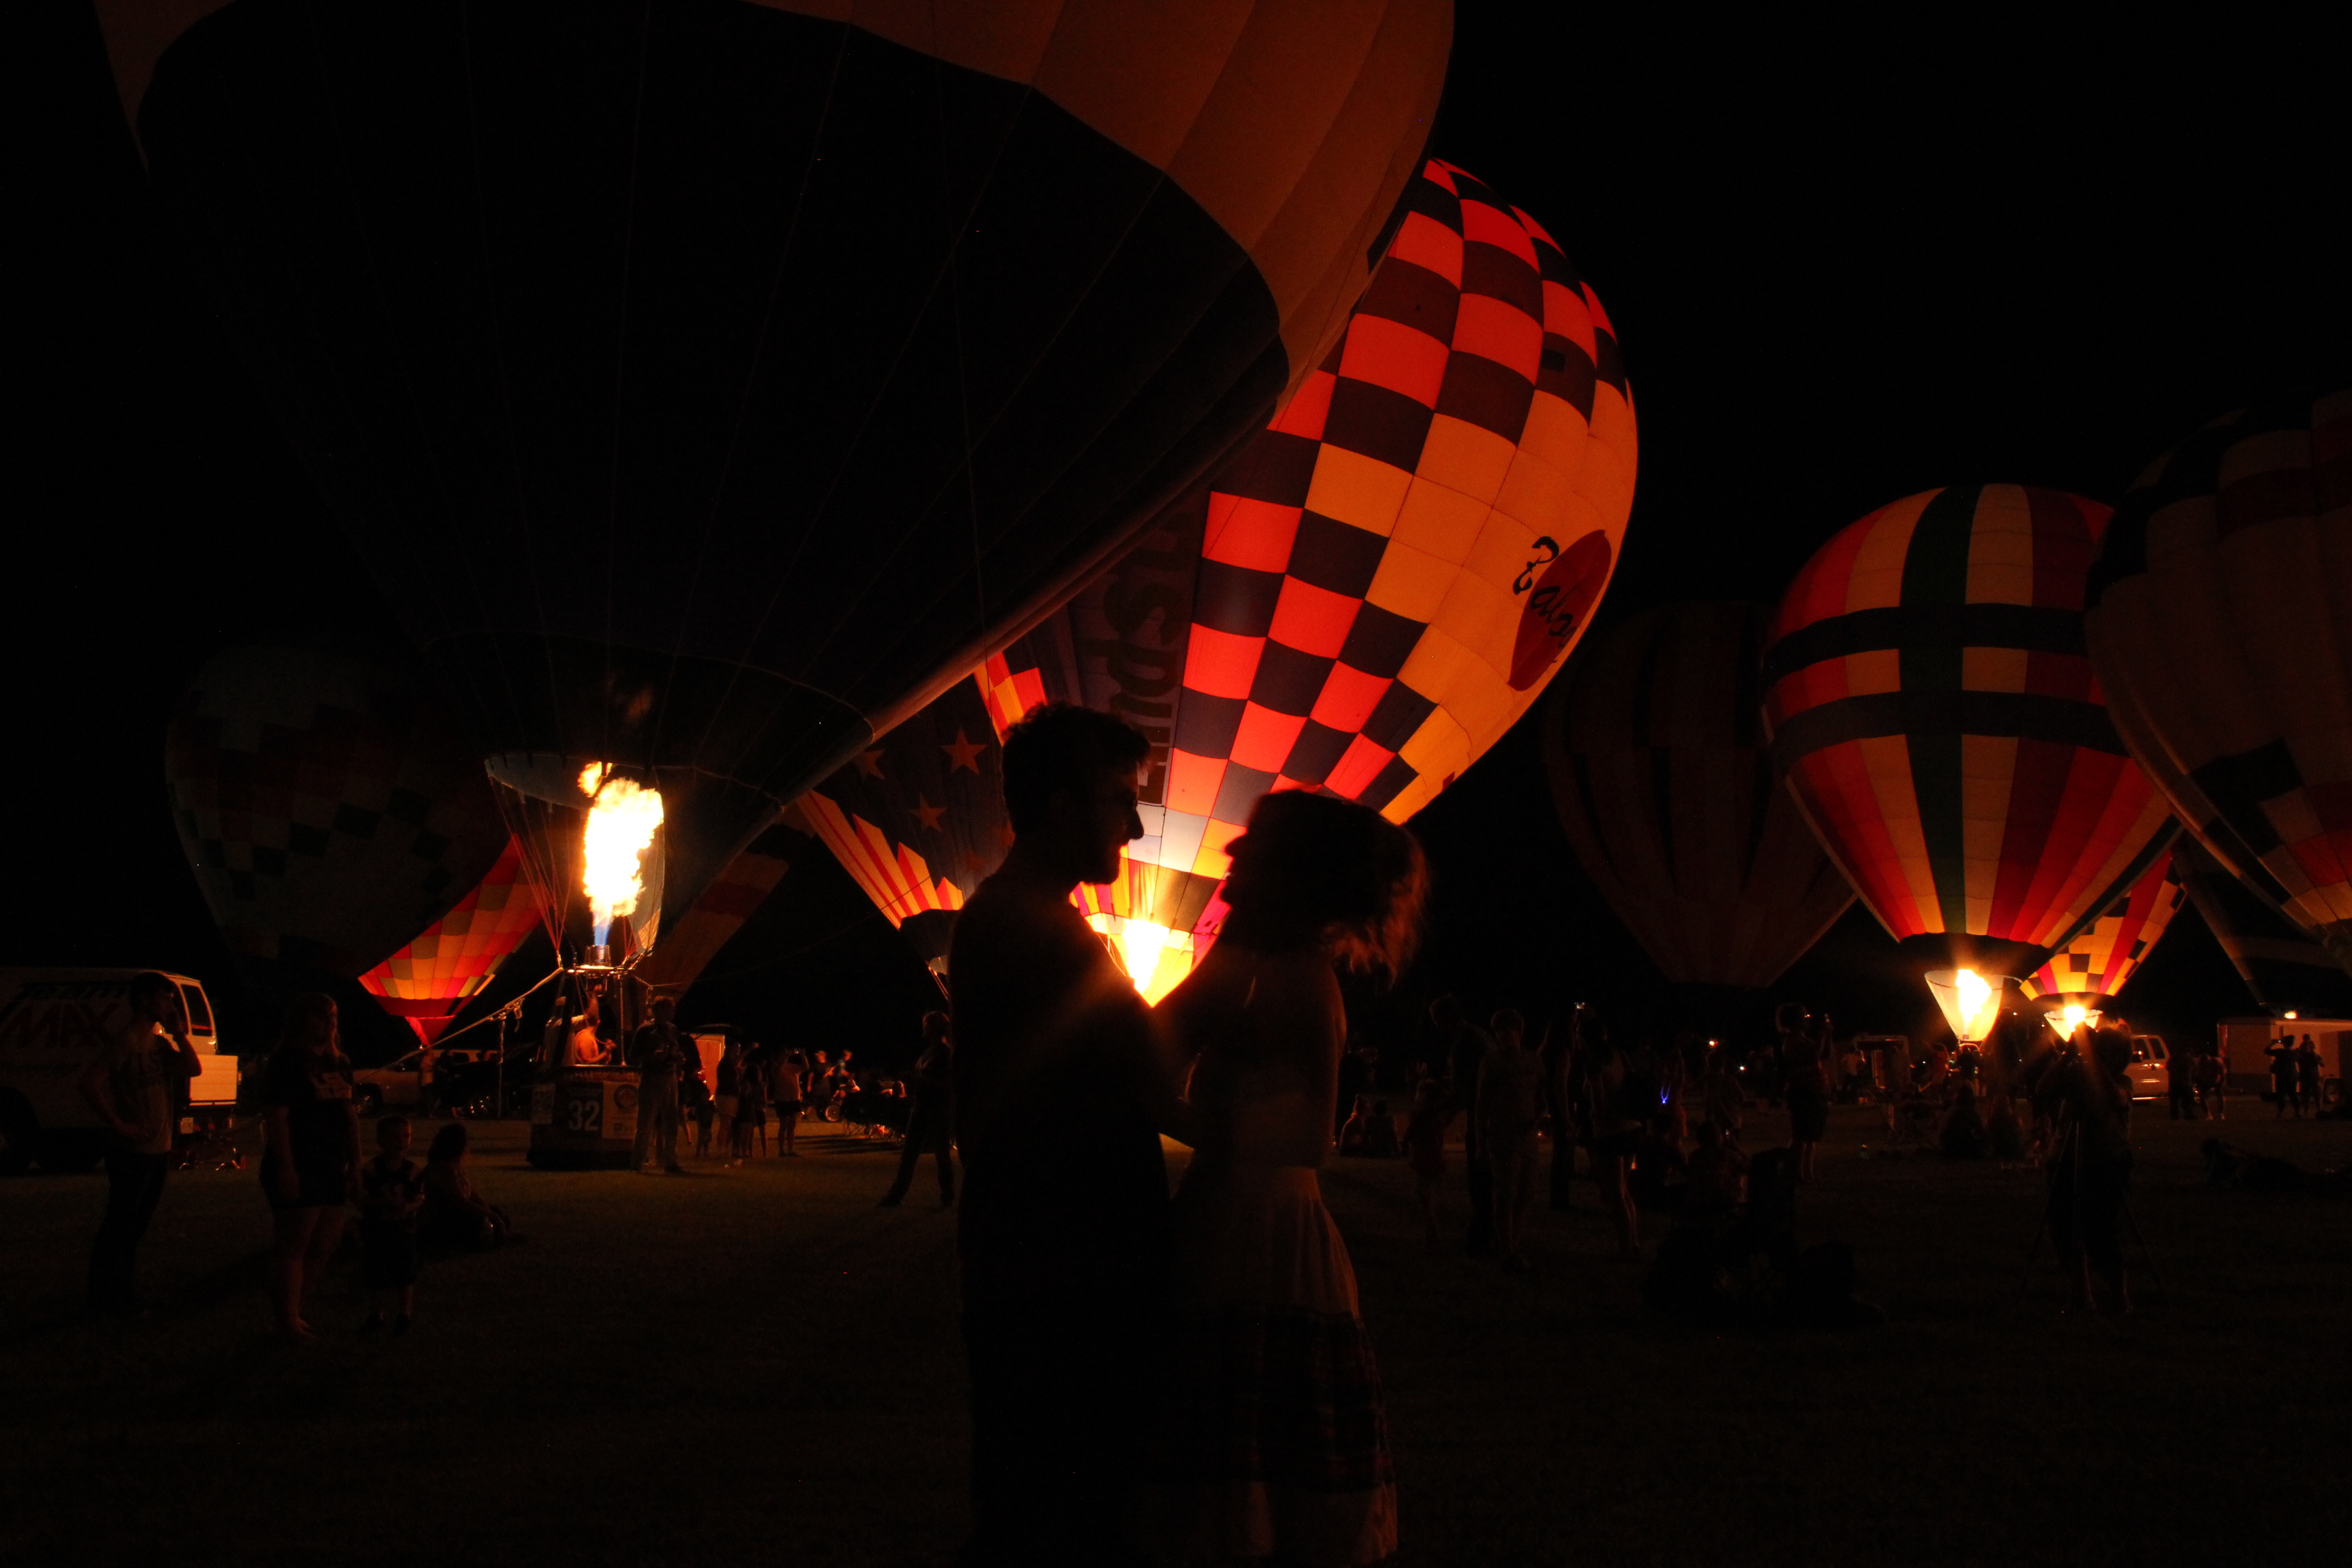 Louisiana Hot Air Balloon Festival